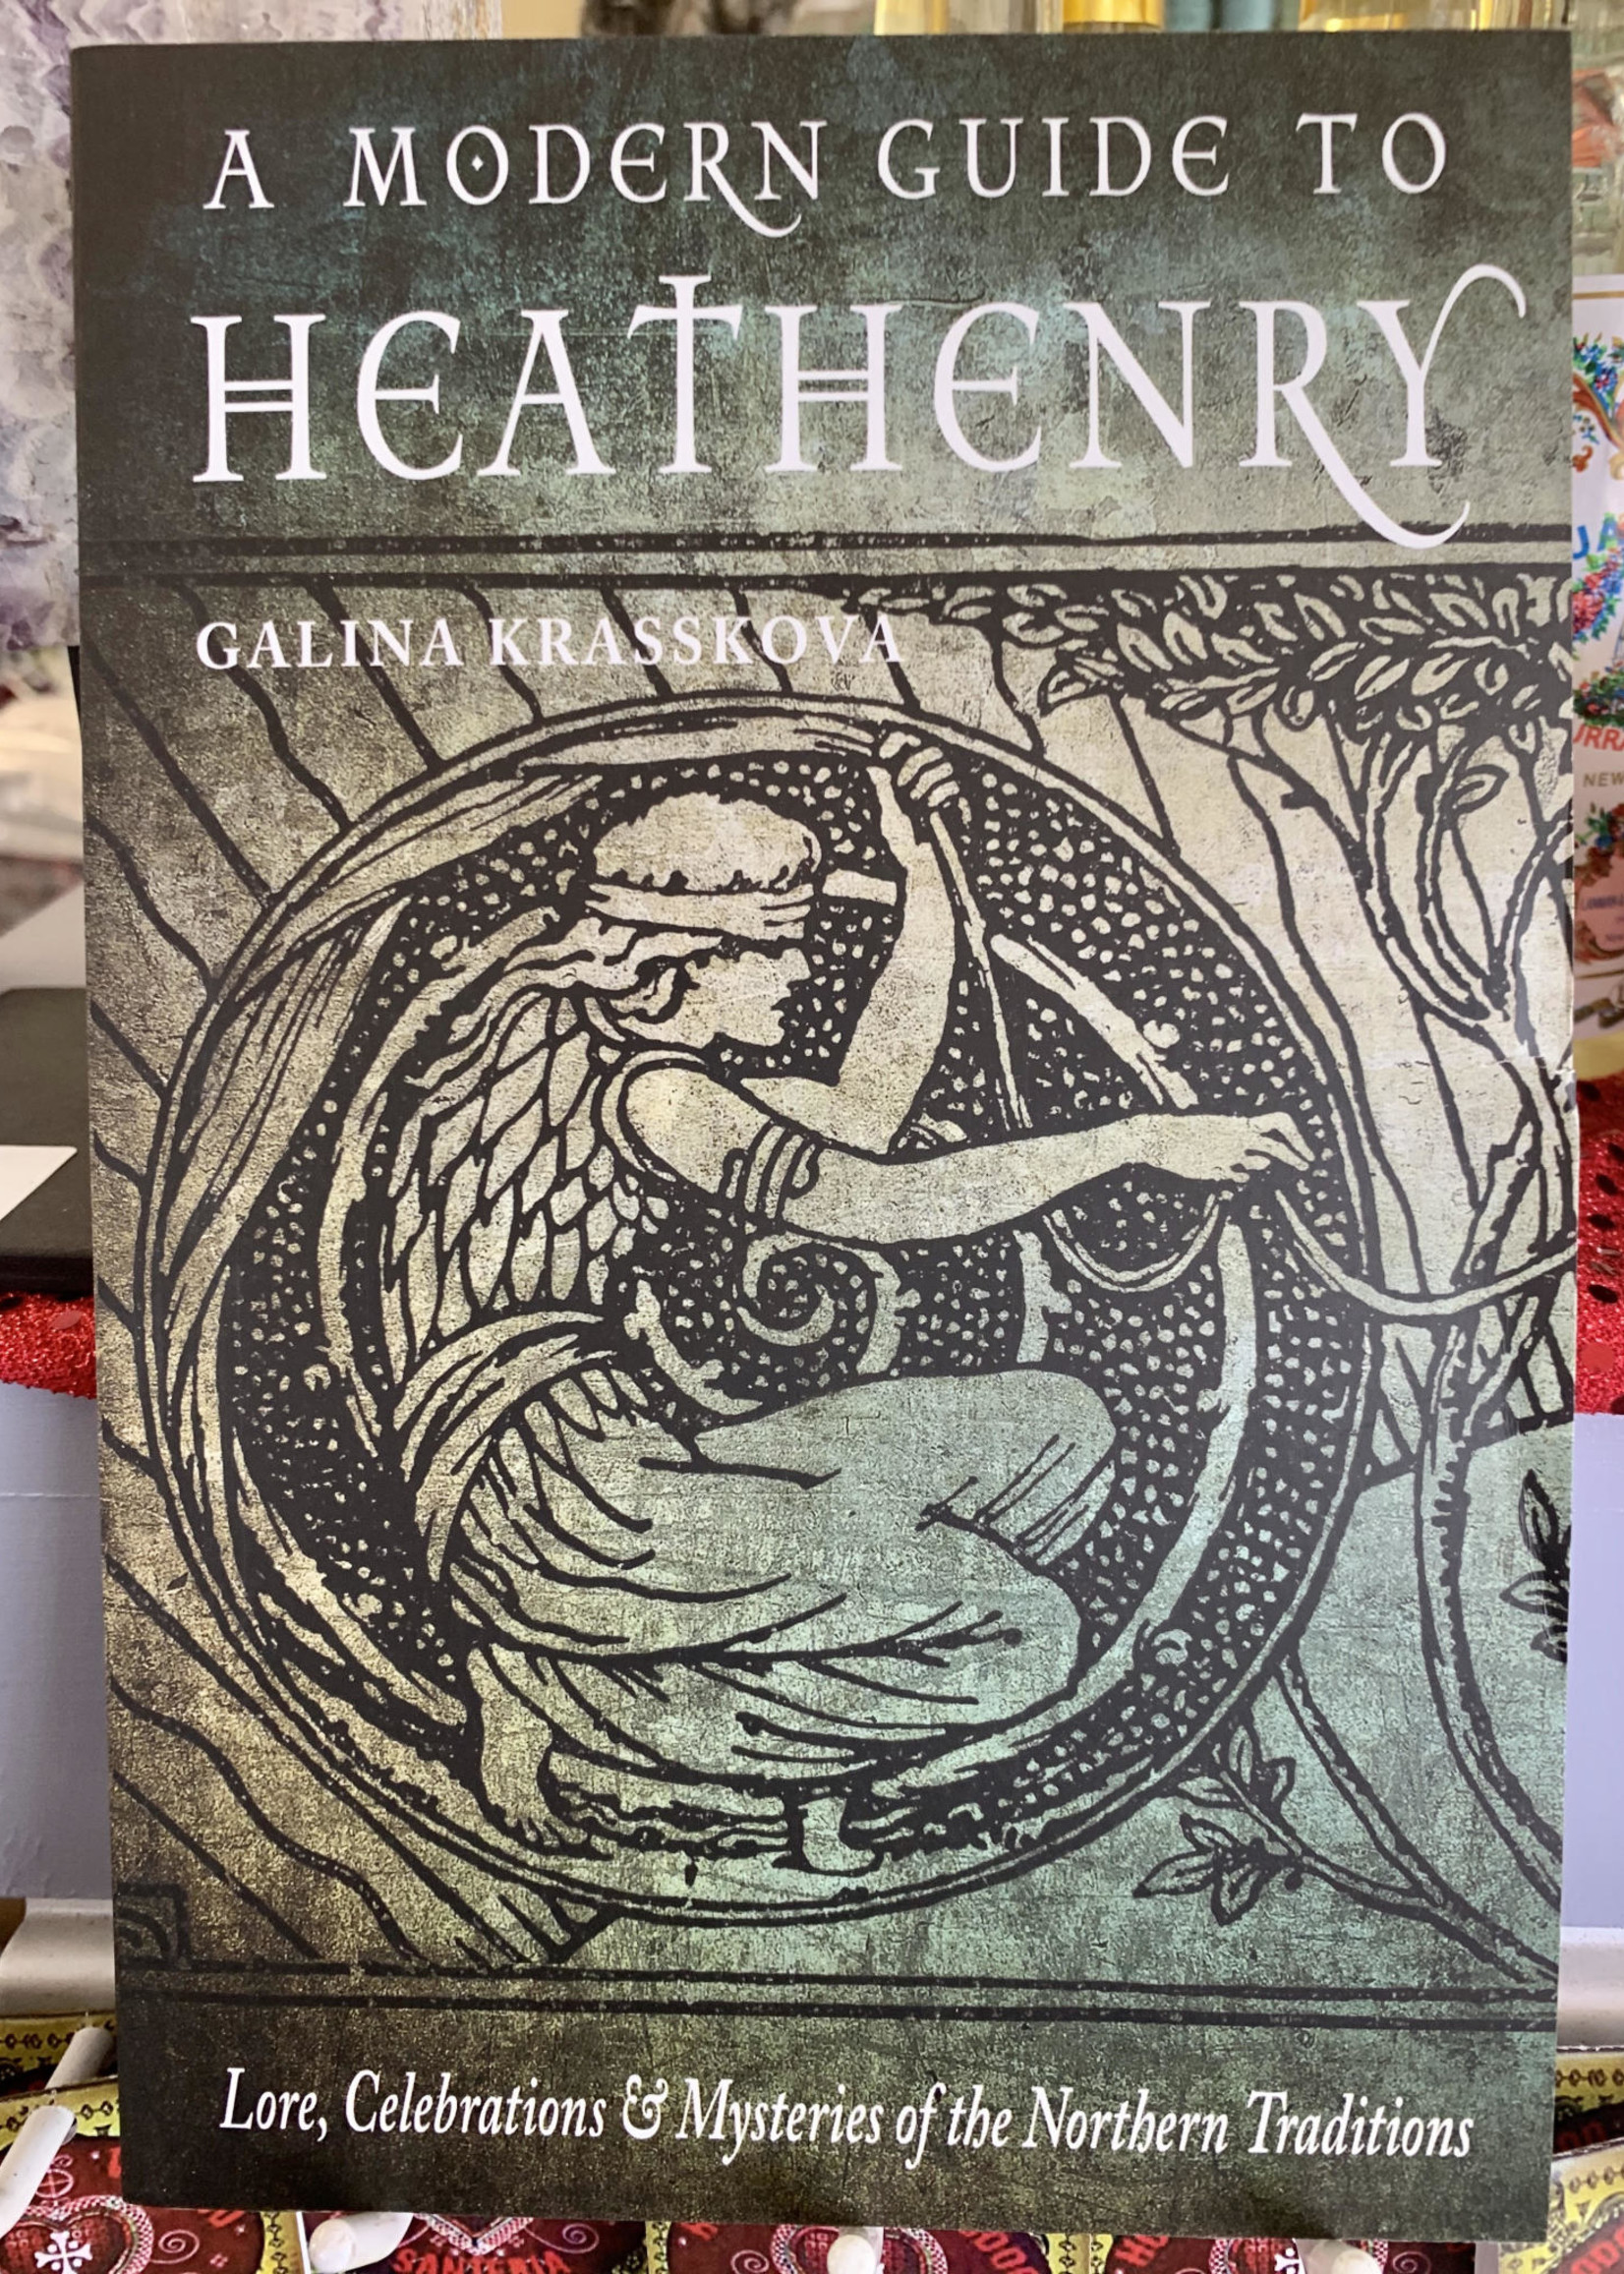 A Modern Guide to Heathenry Lore, Celebrations, and Mysteries of the Northern Traditions - Galina Krasskova